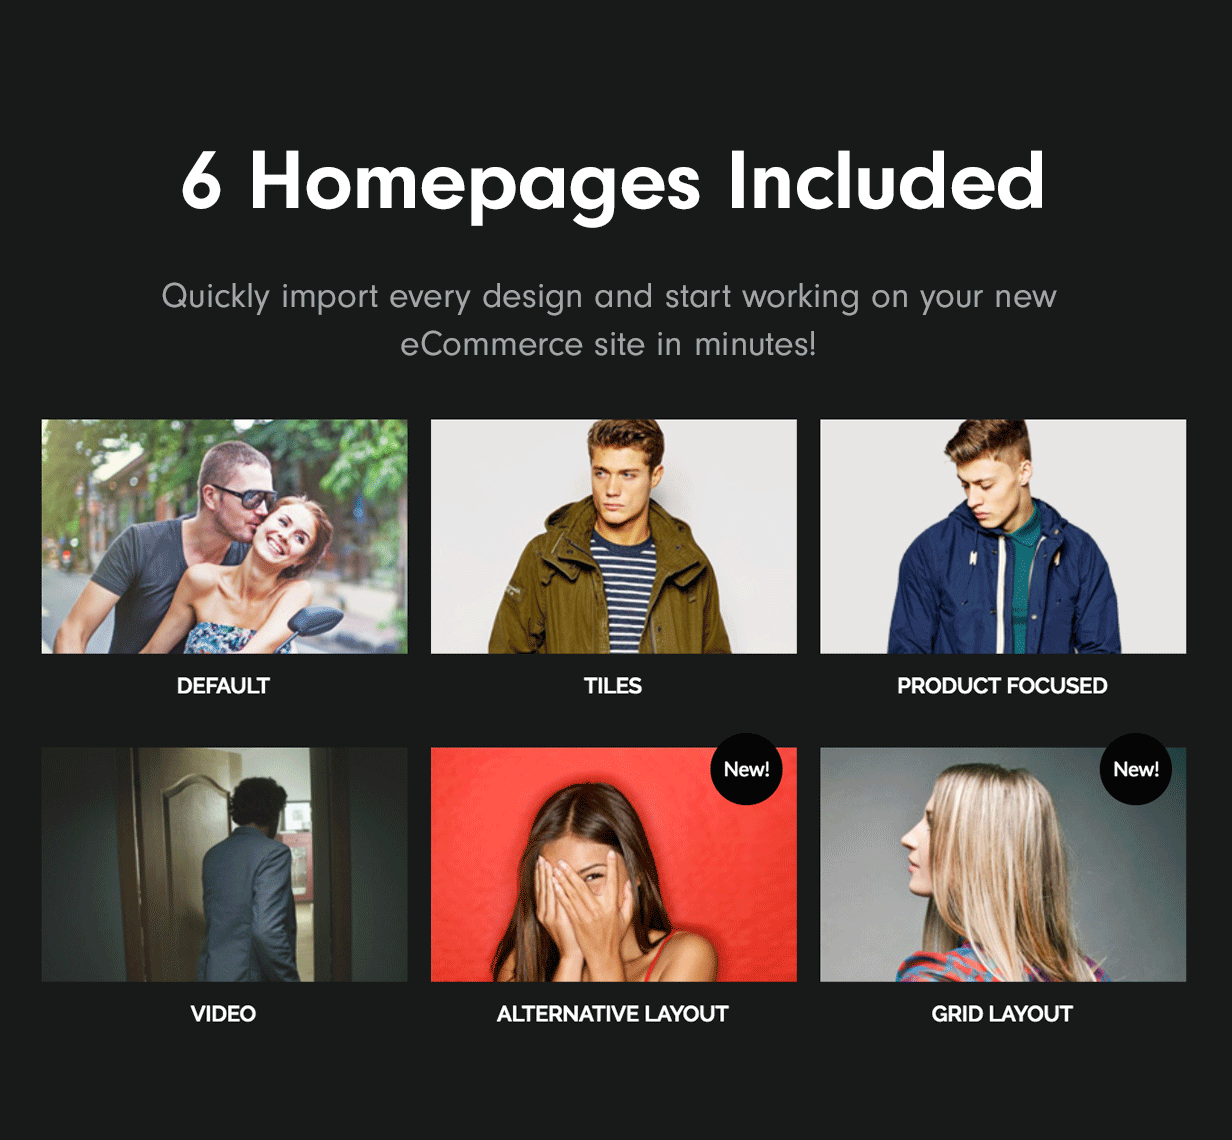 6 Homepages